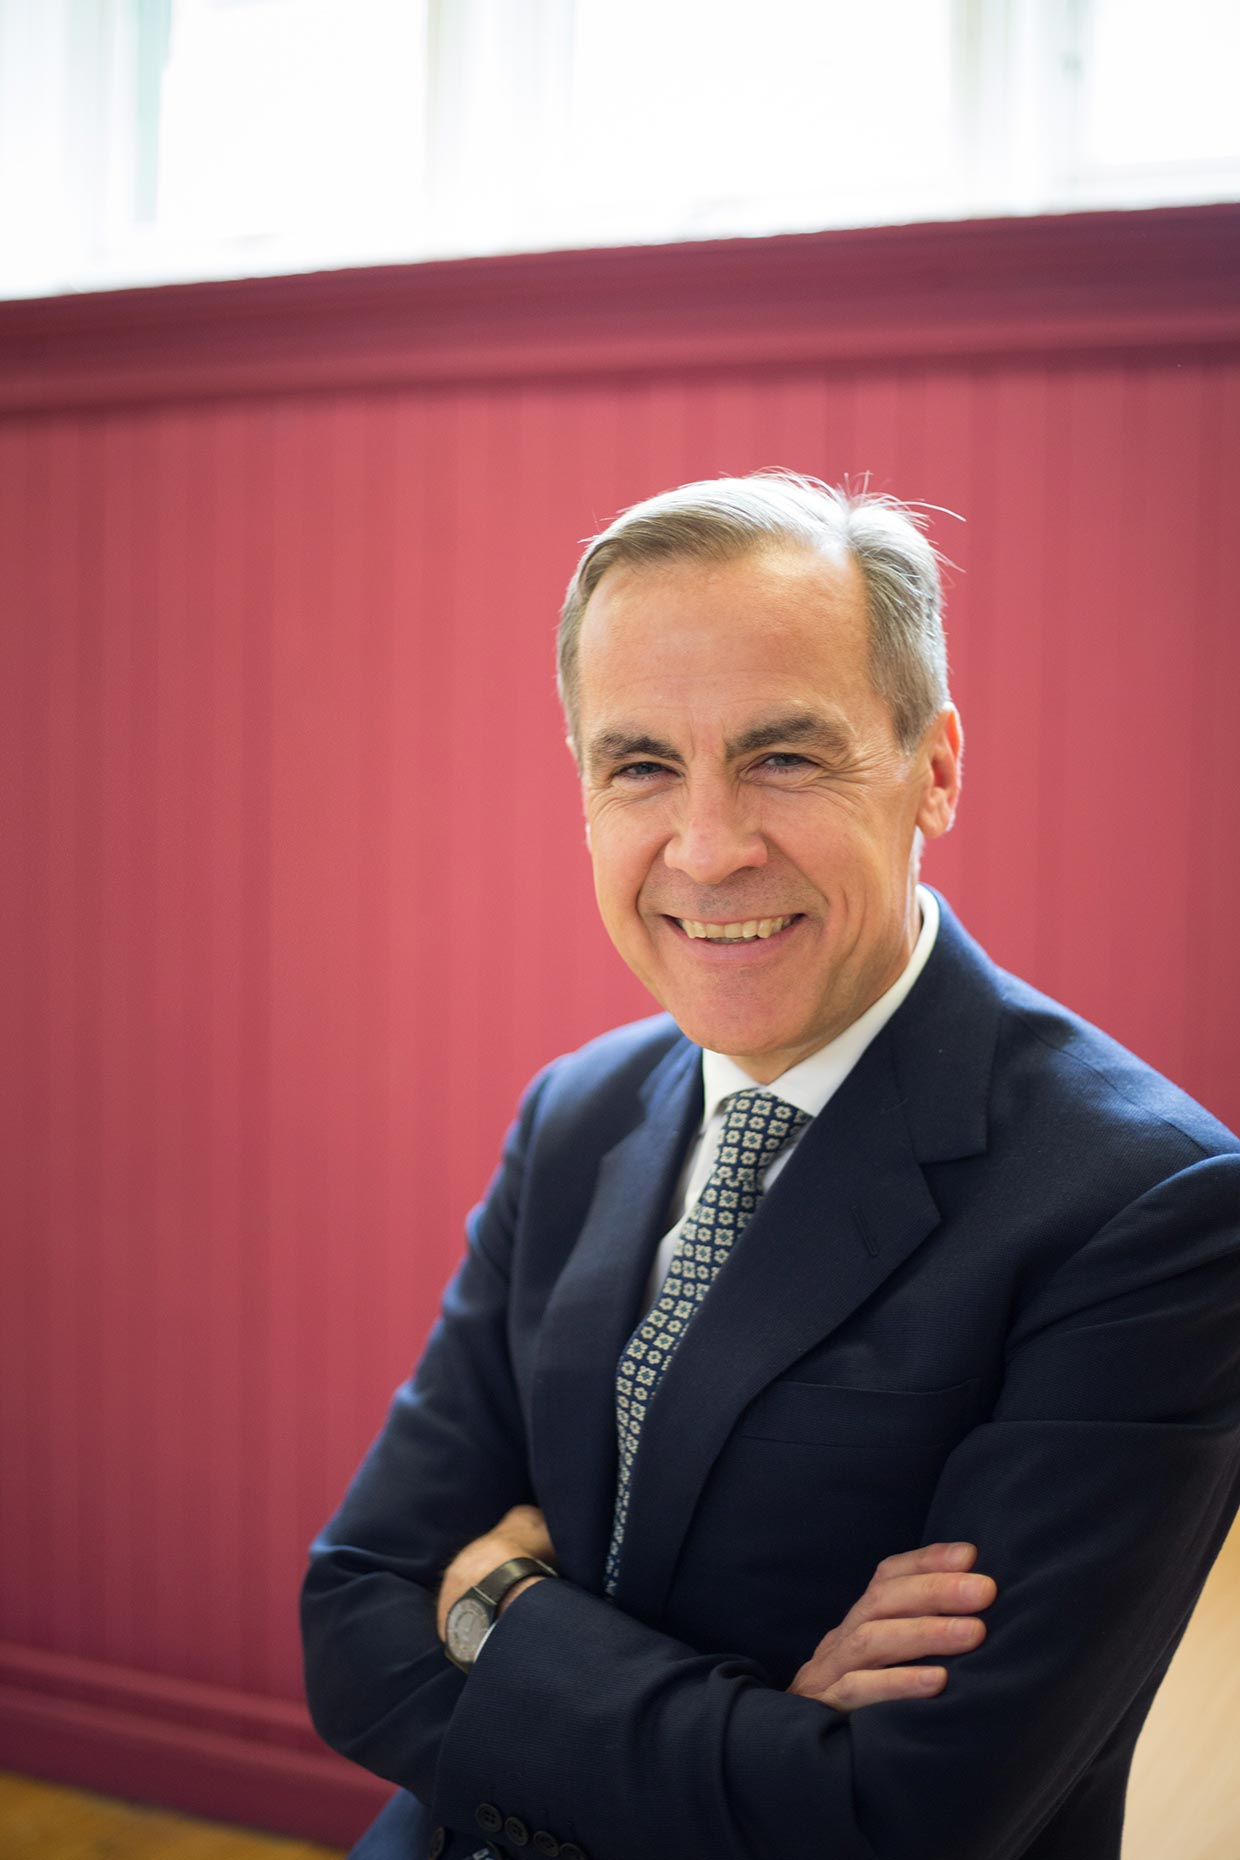 Portrait of Mark Carney, former Governor of the Bank of England